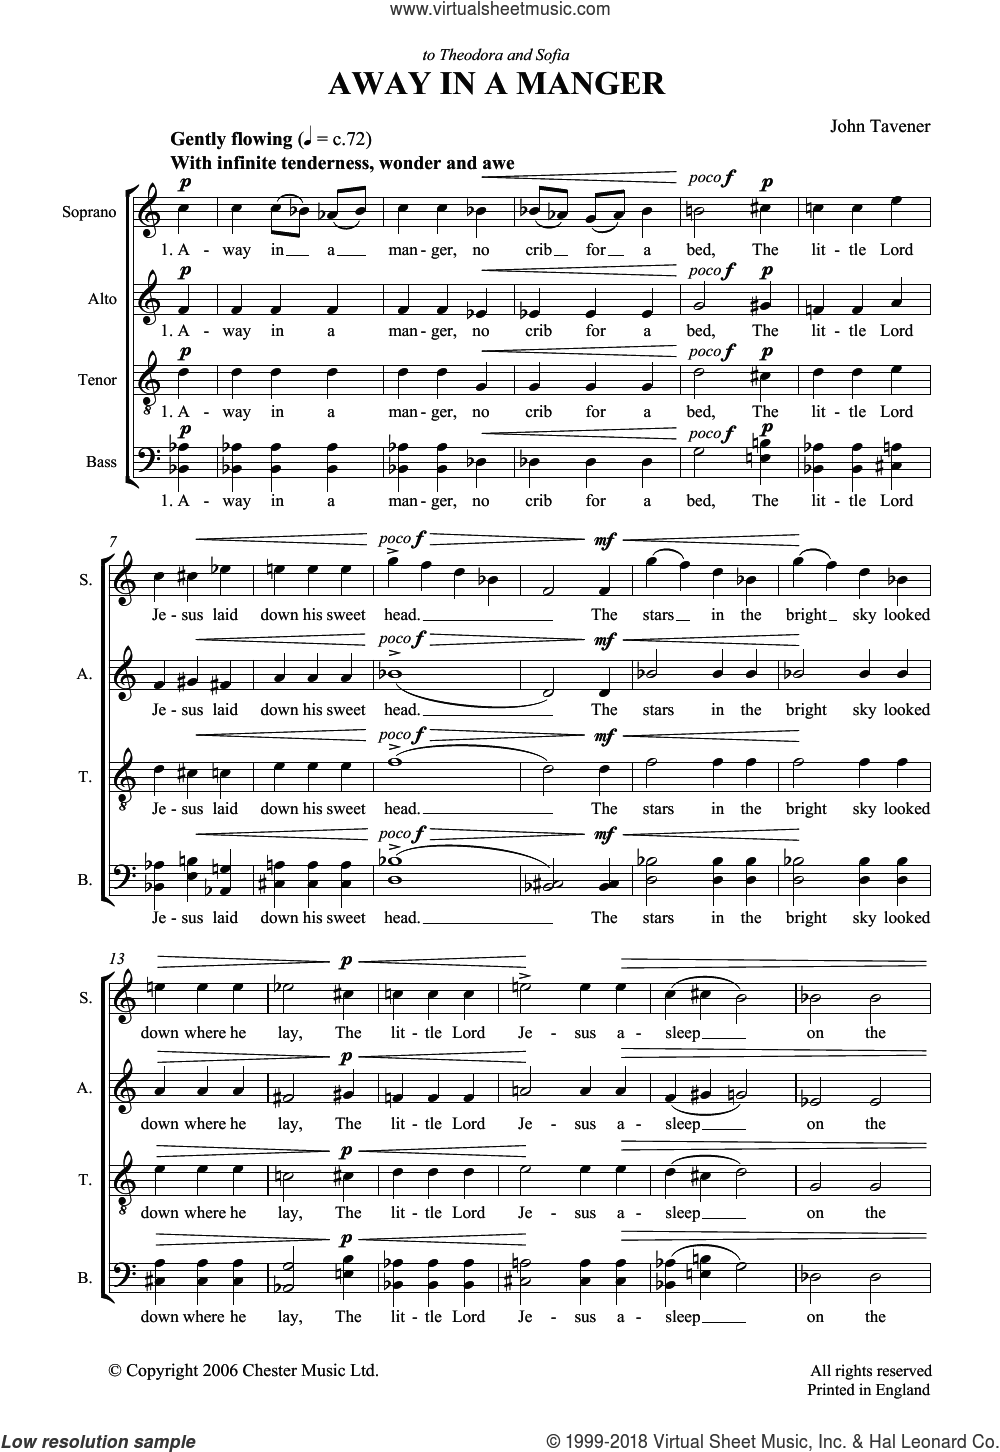 Away In A Manger sheet music for choir by John Tavener and Miscellaneous, classical score, intermediate skill level